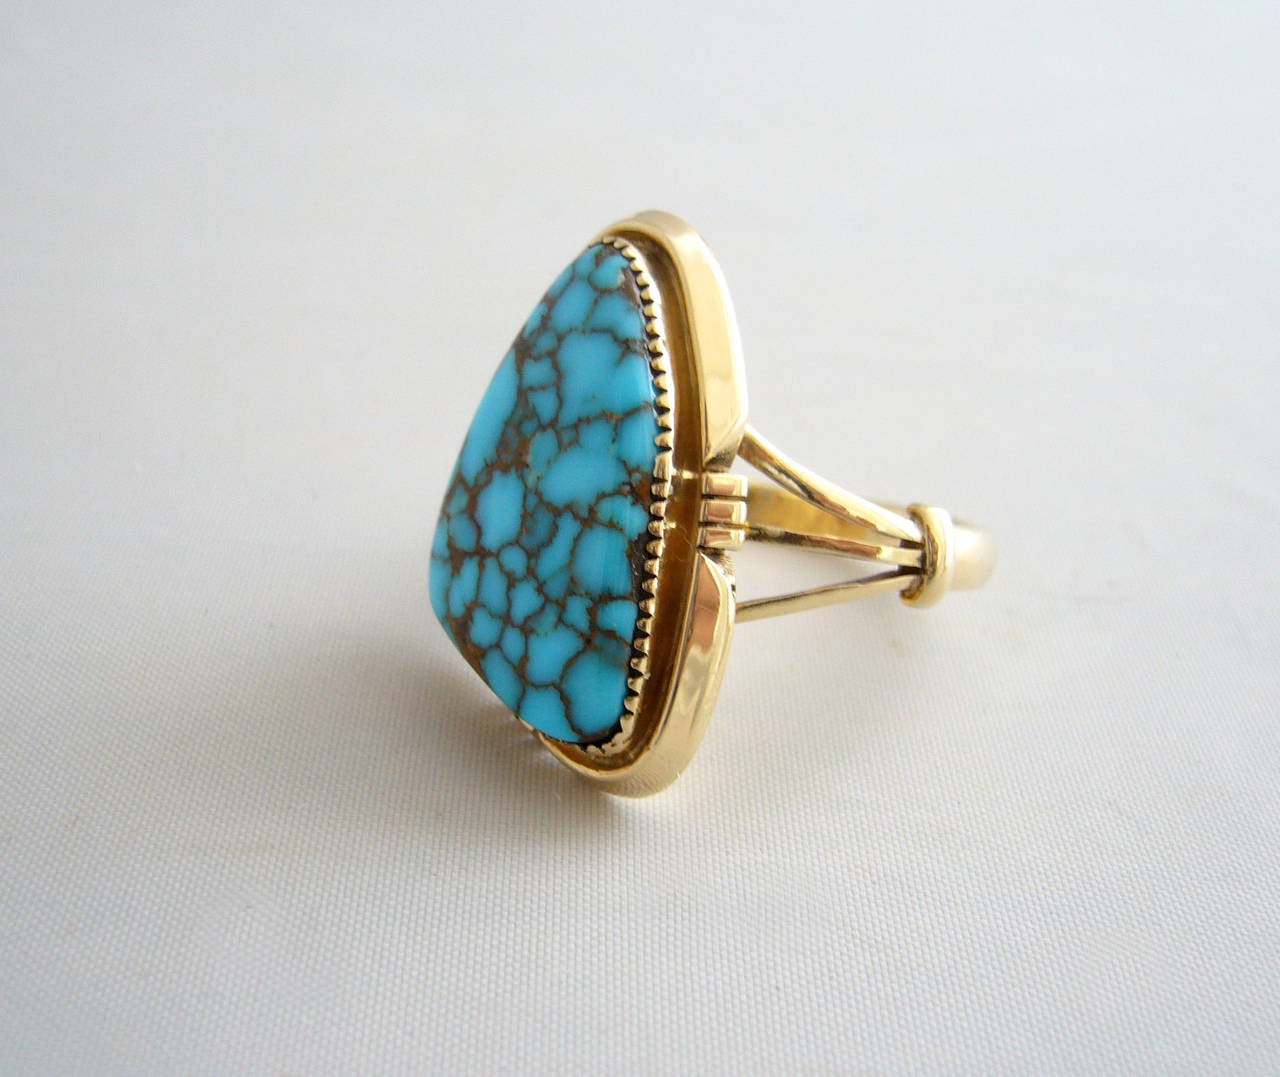 Blue Mountain Turquoise Gold Native American Ring In Excellent Condition For Sale In Los Angeles, CA